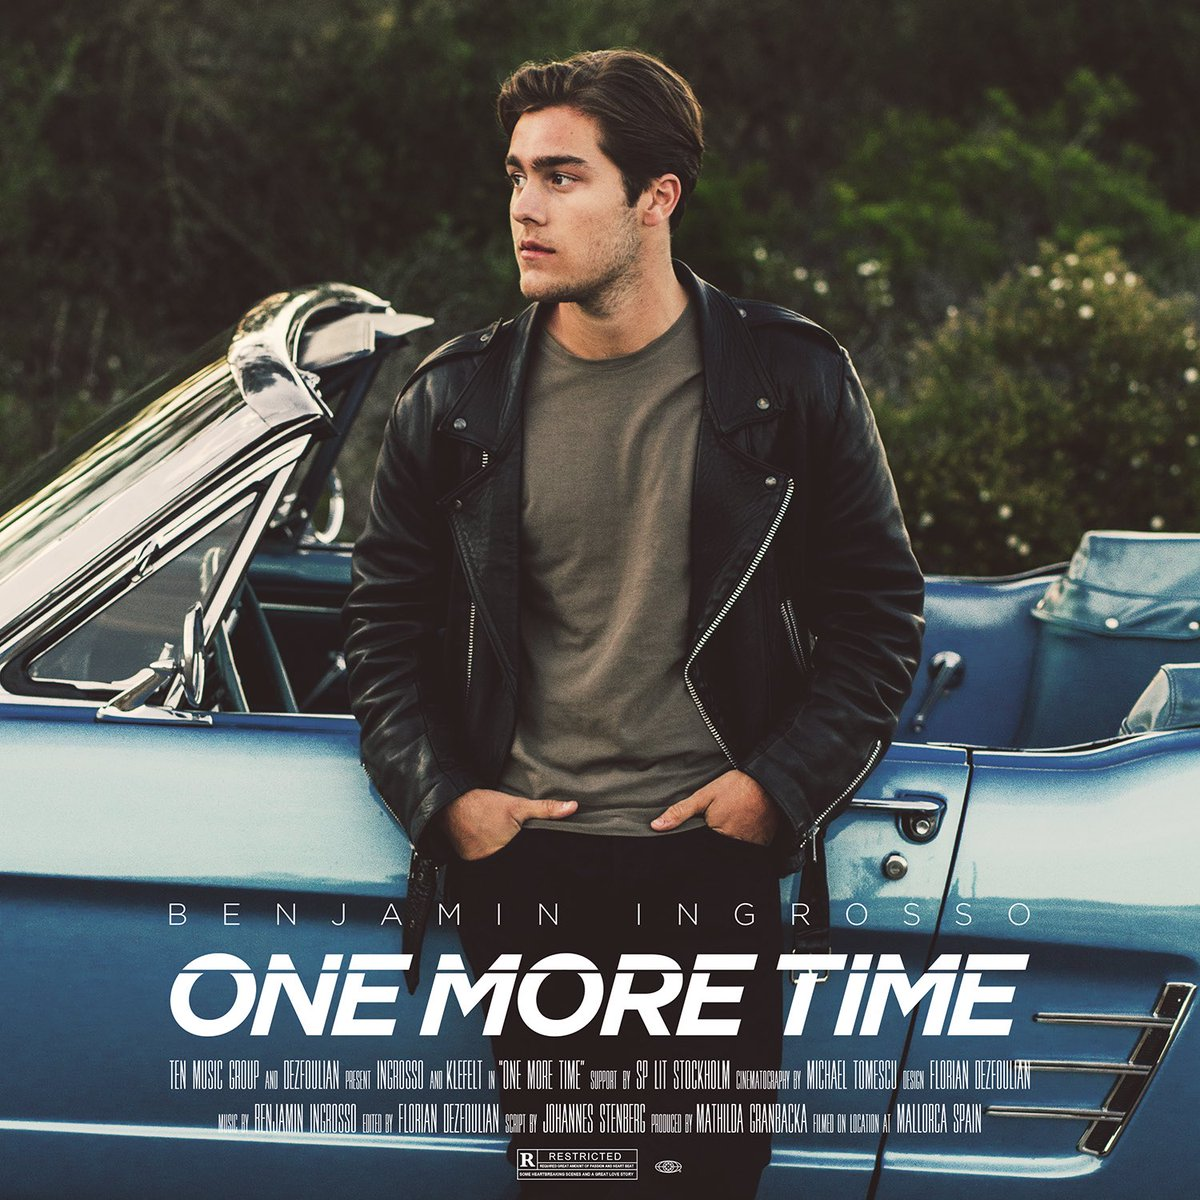 On Friday @BenjyIngrosso is releasing his new single One More Time and @_ambivalensen will release Allt För Mig via @TenacityRec 🎉🎵✨